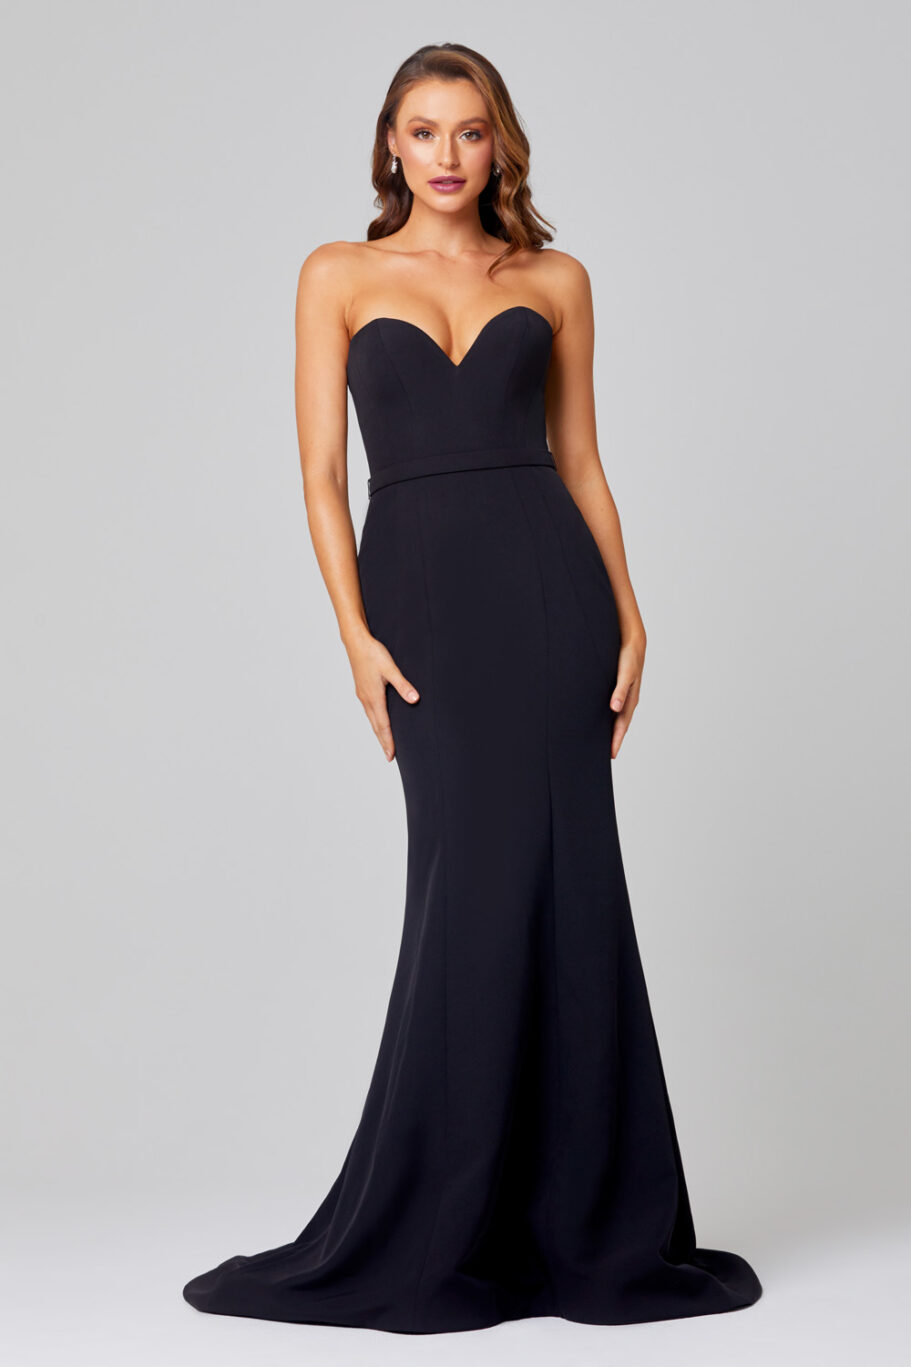 Lacie Strapless Mermaid Evening Dress -PO886 Front